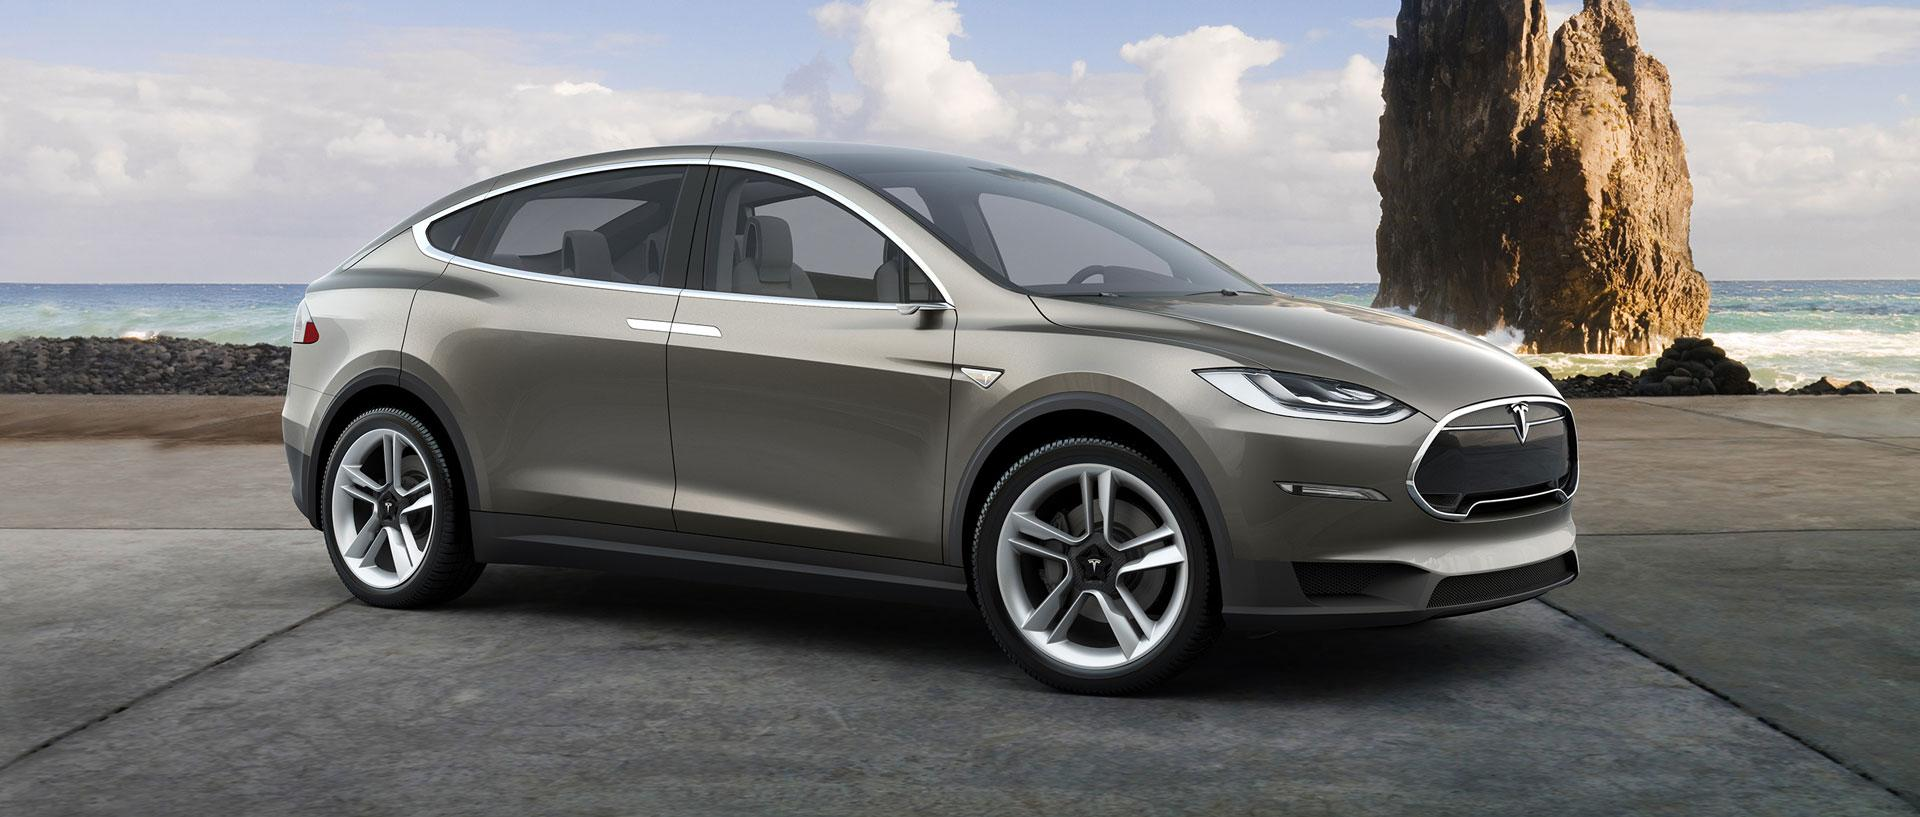 Tesla Model X Crossover Races to Production